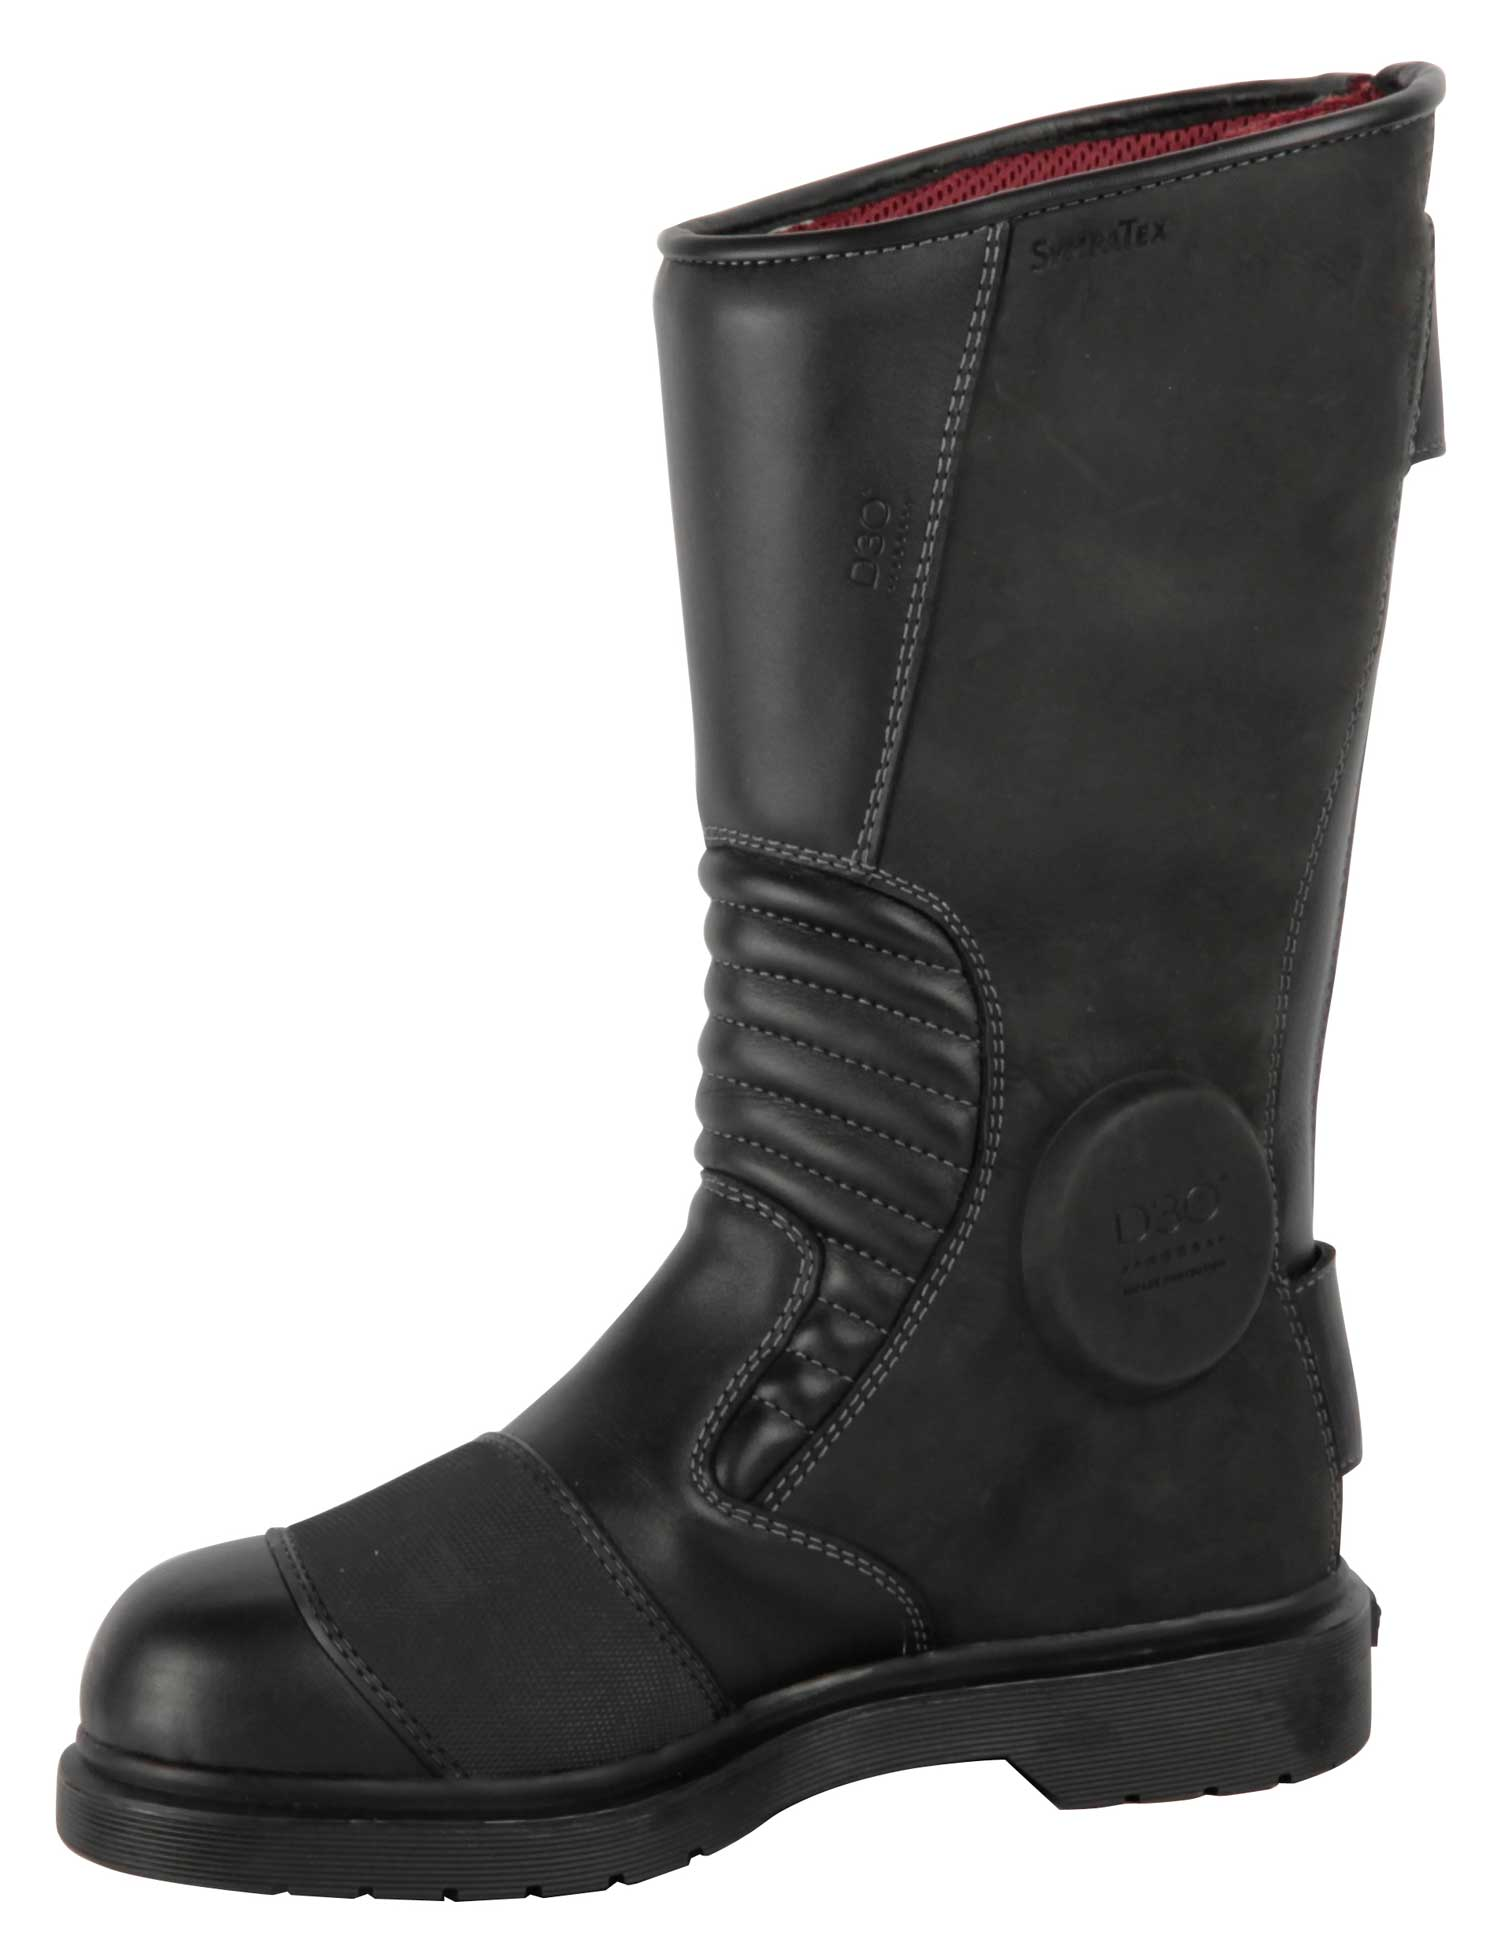 The Dr Marten Garrick motorcycle boot